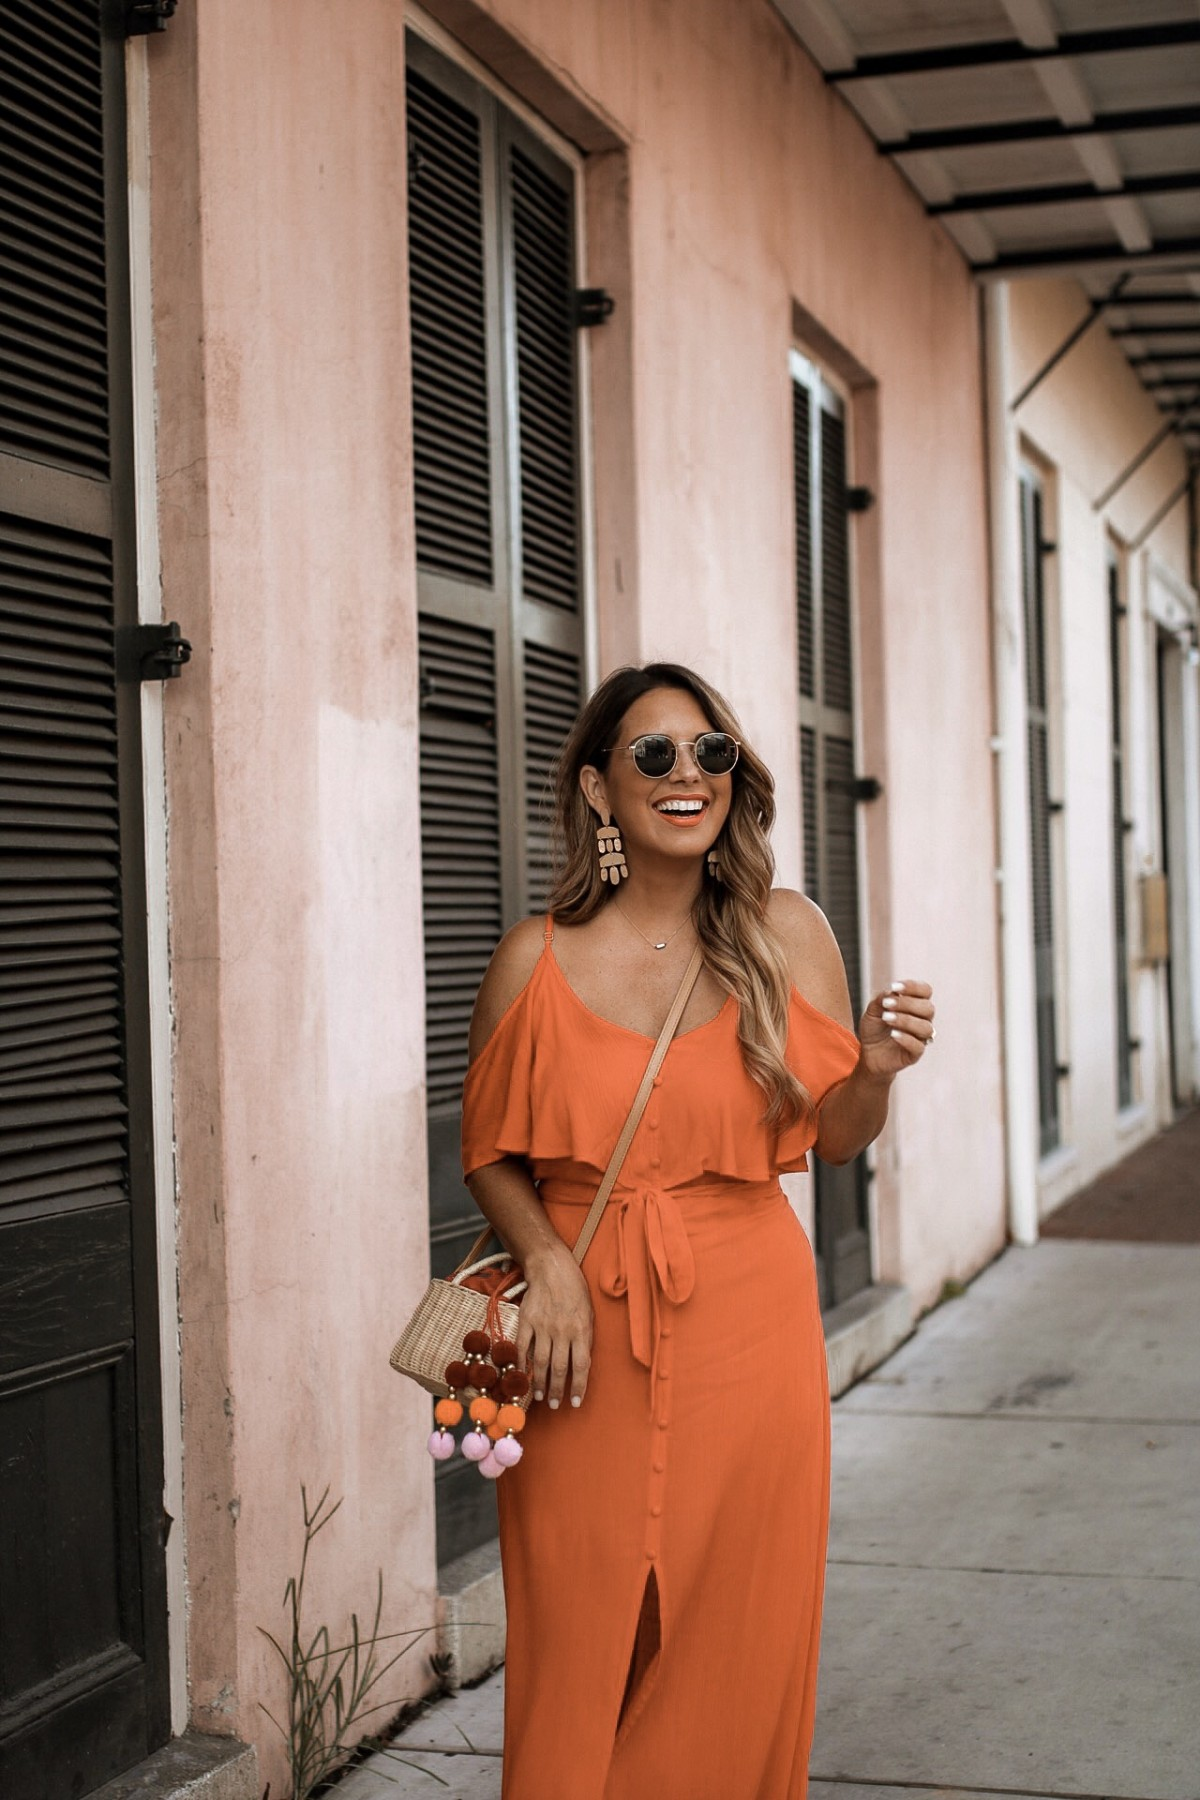 PERFECT CORAL MAXI FOR BRUNCH WITH THE GIRLS OR DATE NIGHT WITH MY MAN. SHOP THE BEST PETITE MAXIS AT RIVER ISLAND. SHARING MORE DETAILS ON THE BLOG.